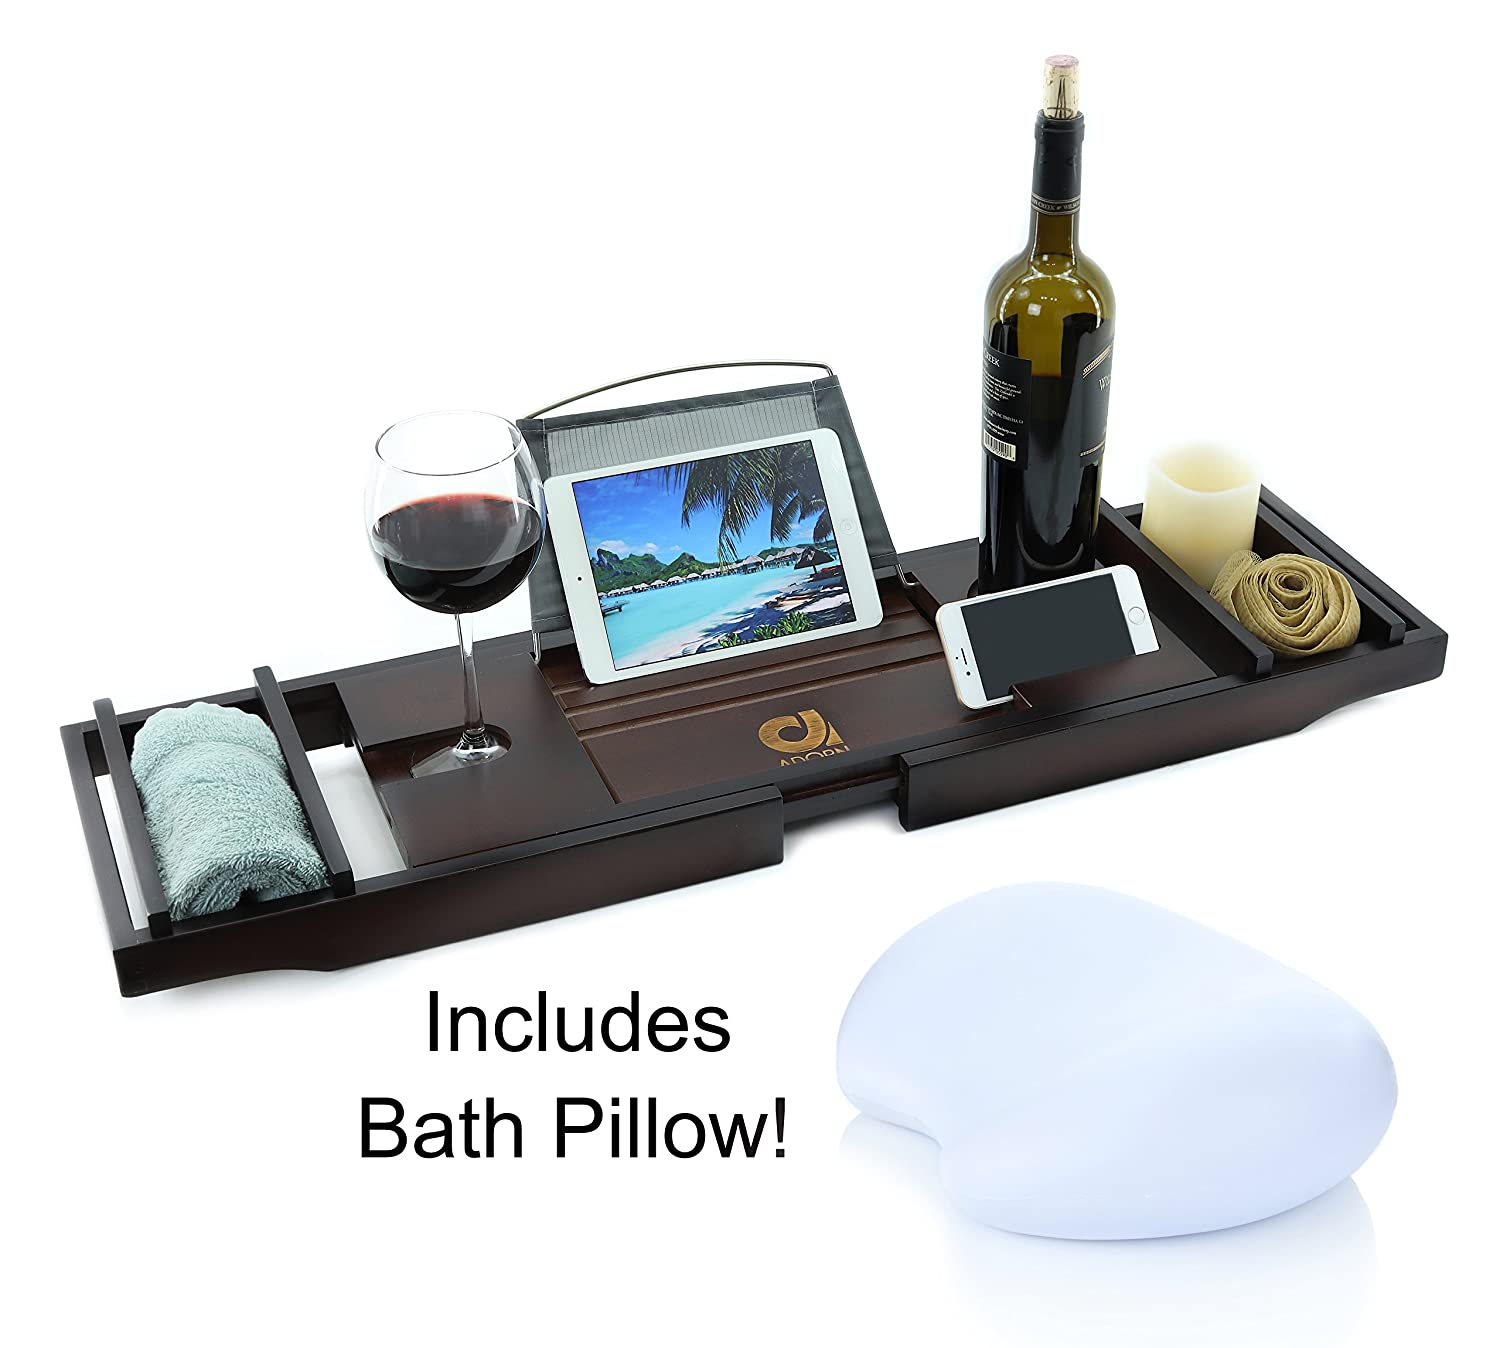 Adorn Home Essentials Bamboo Bathtub Caddy Tray with Wine and Cup Holder | Waterproof/Washable Bath Pillow with Suction Cup | One or Two Person Bath or Bed Adjustable Tray | Expands up to 43 | White AD-10046-WH